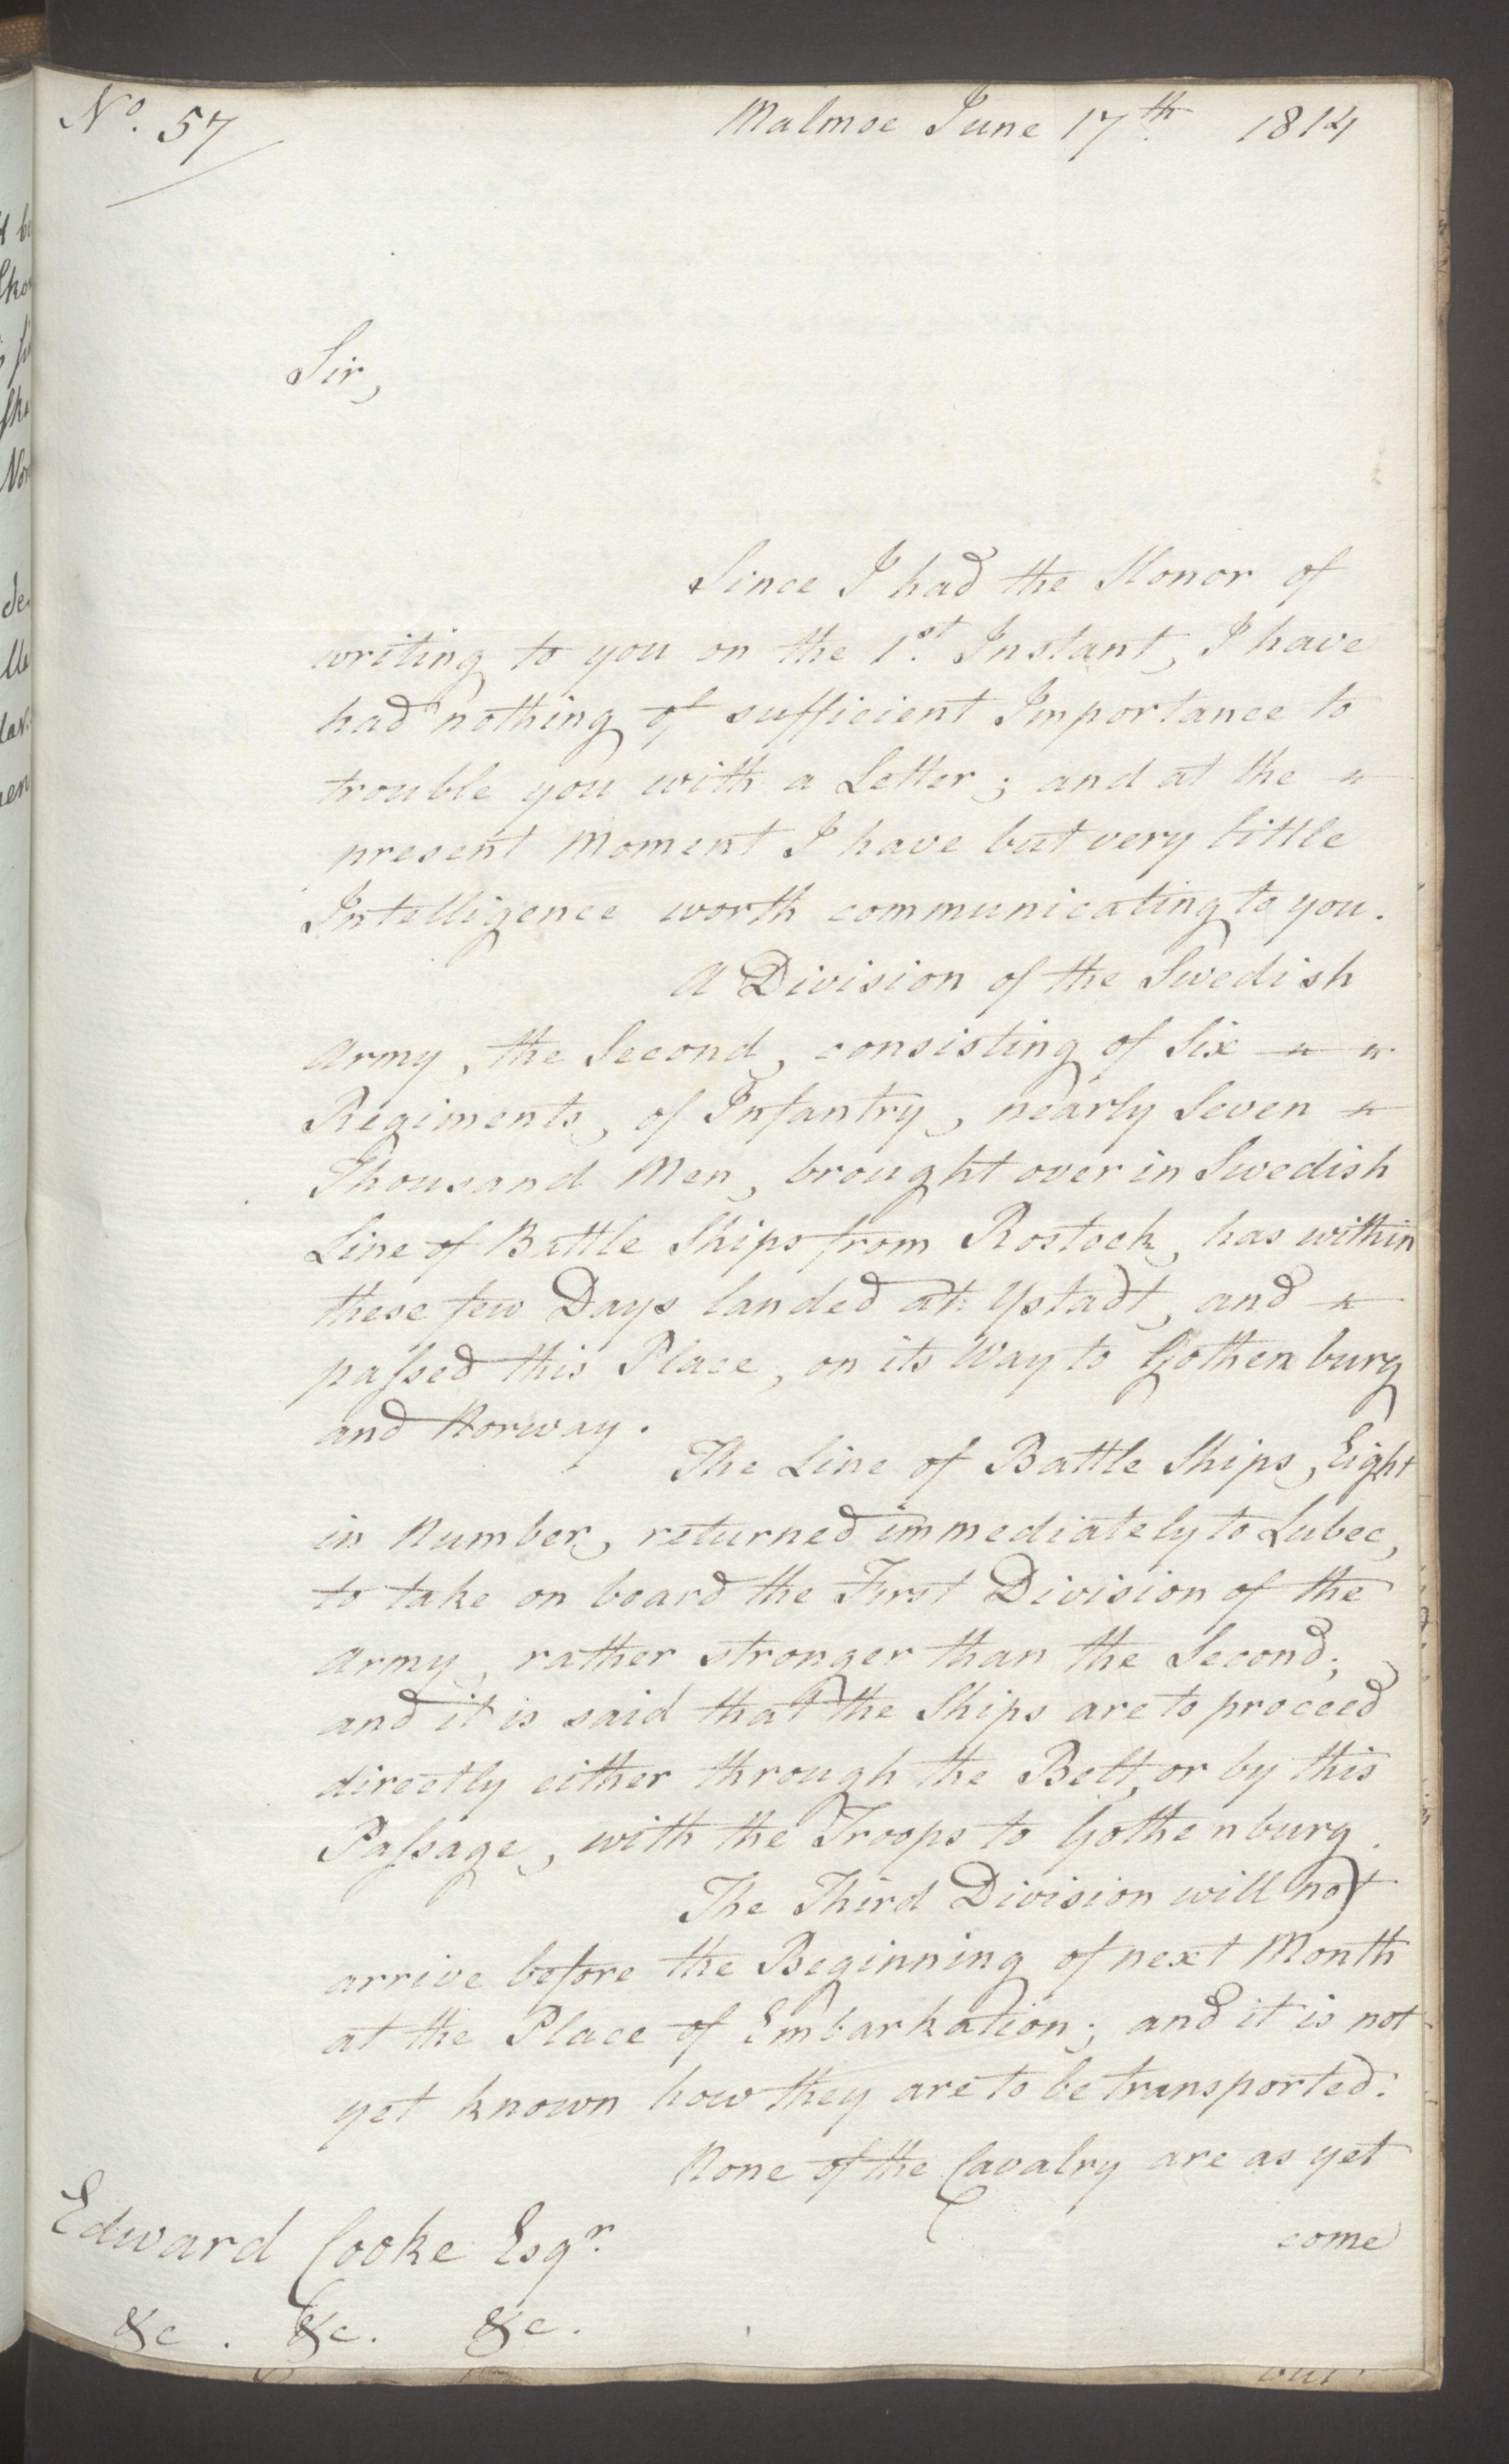 UKA, Foreign Office*, FO 38/16: Sir C. Gordon. Reports from Malmö, Jonkoping, and Helsingborg, 1814, s. 63